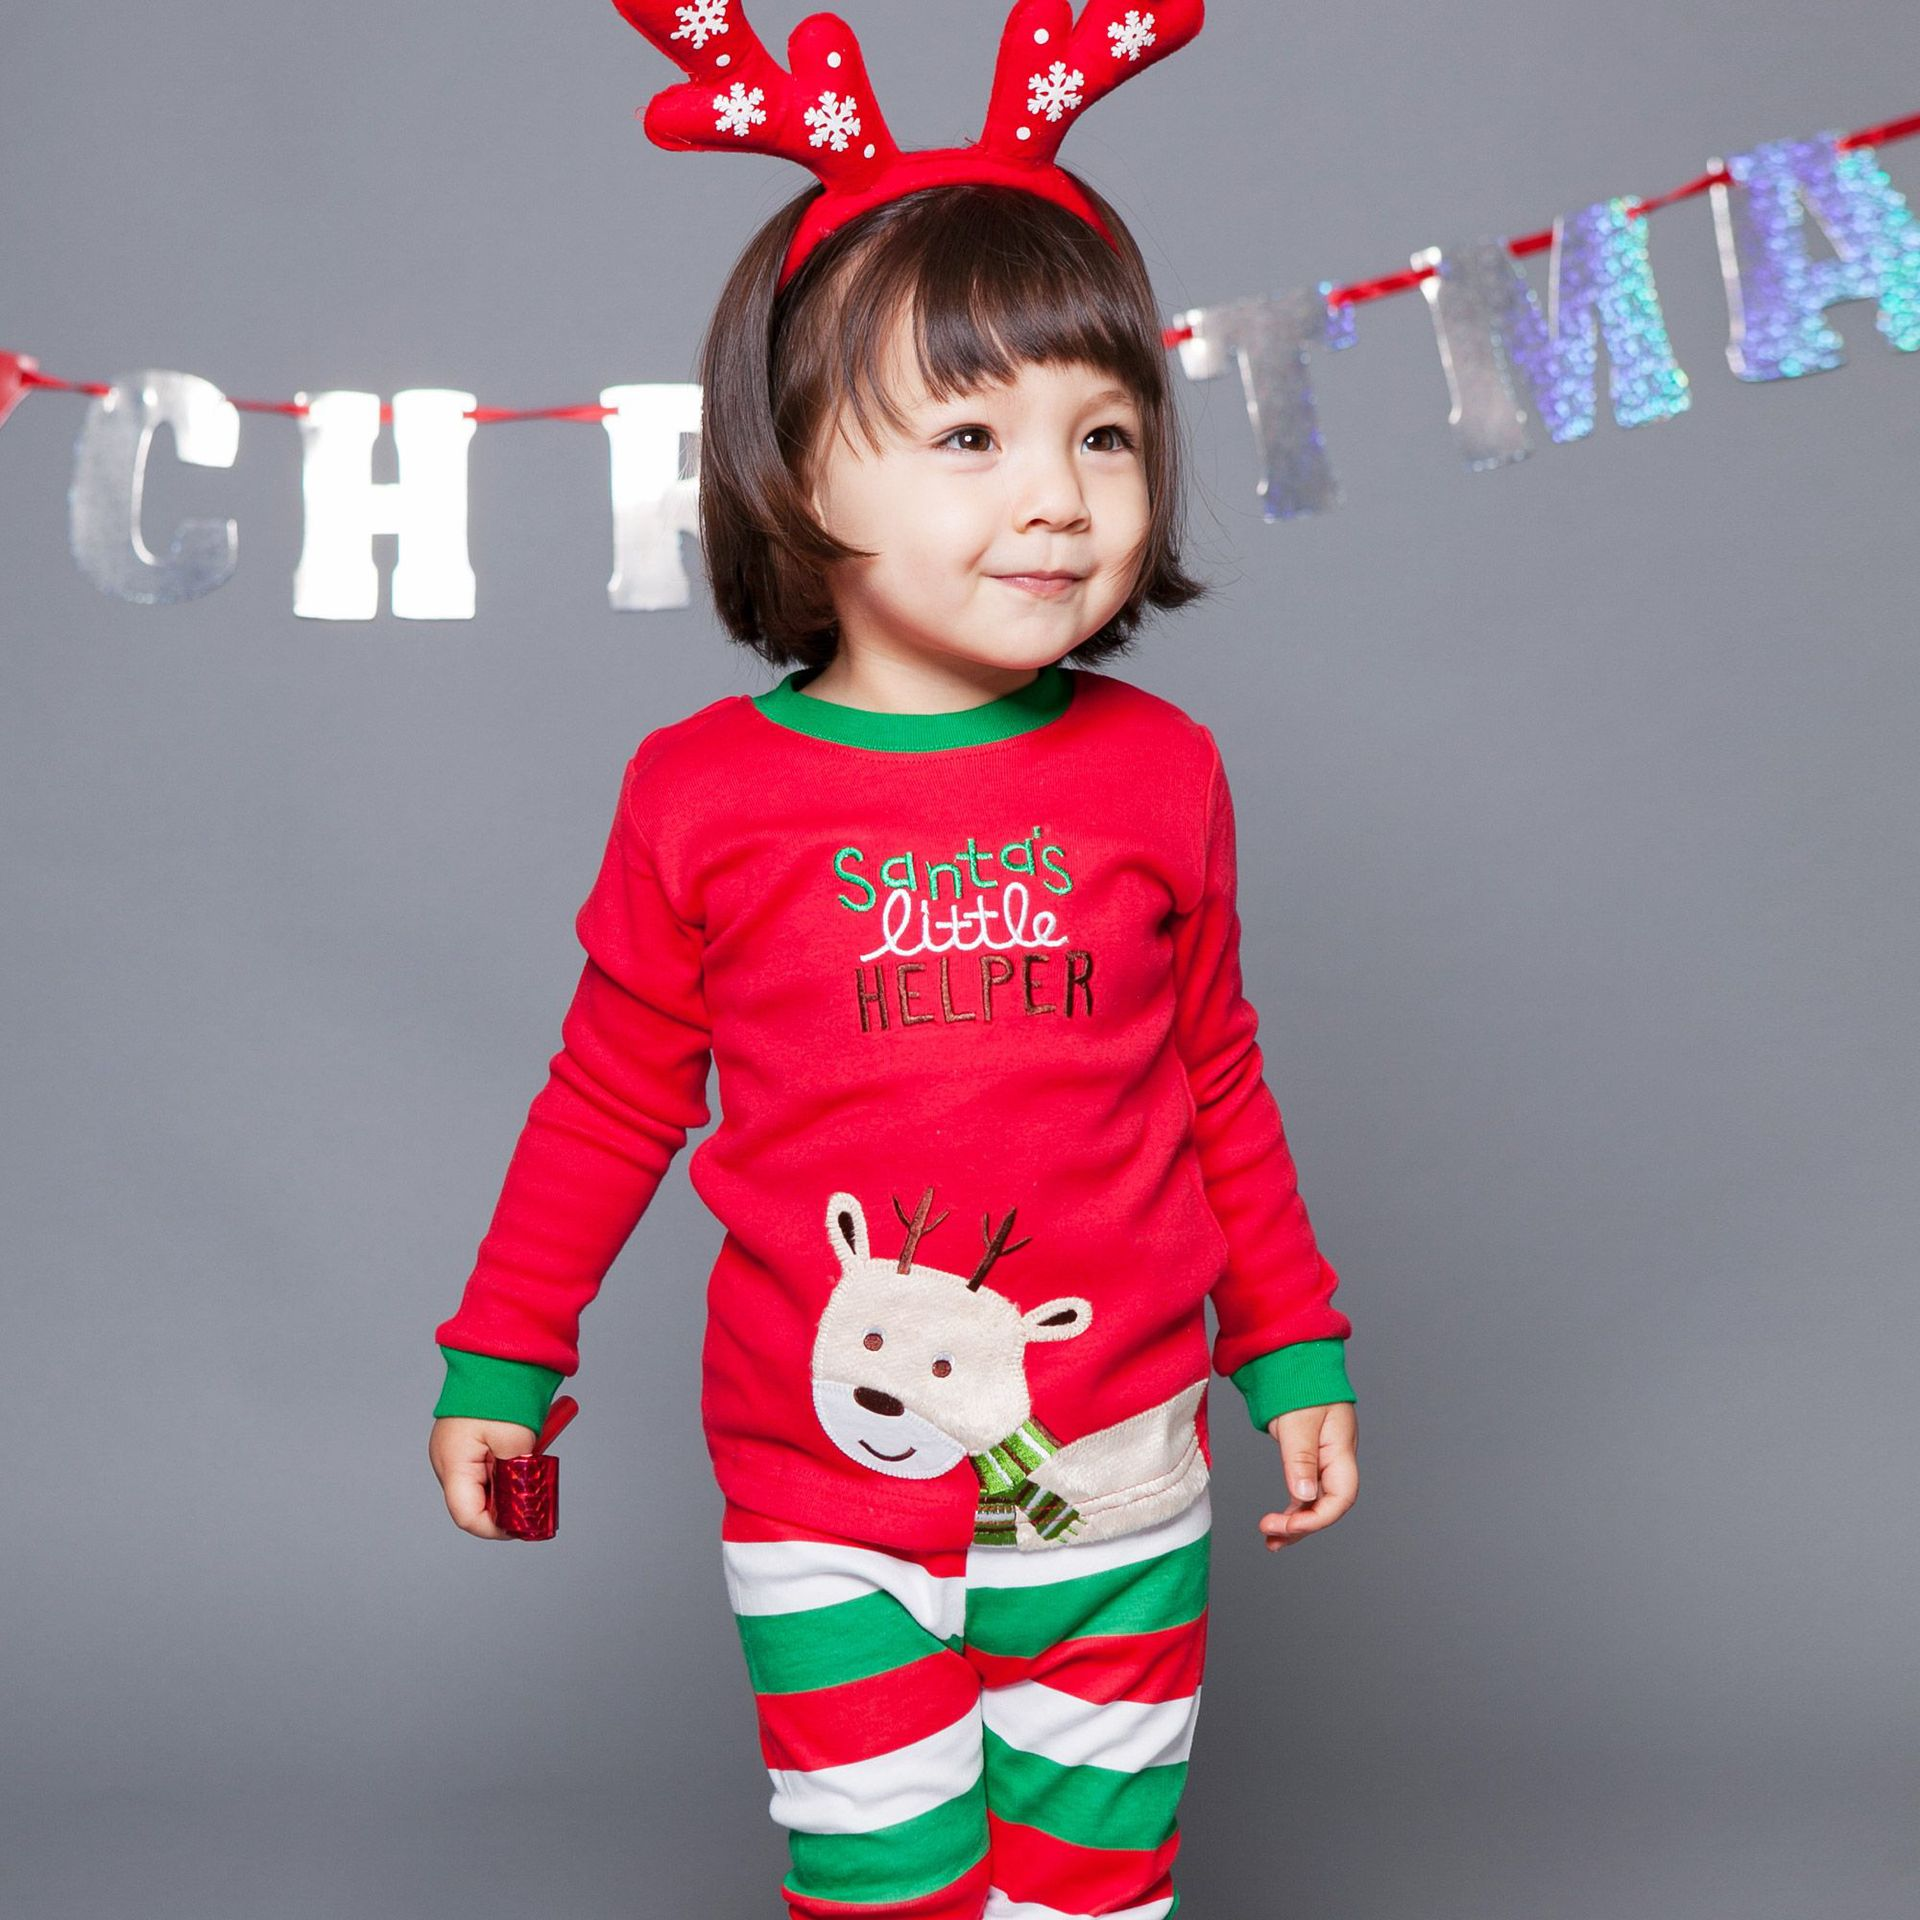 2019 Kids Christmas   Pajamas   clothes   Set   boys sleepwear Toddler girl pyjamas Tops+pants Child Xmas Clothing   Set   2PCS